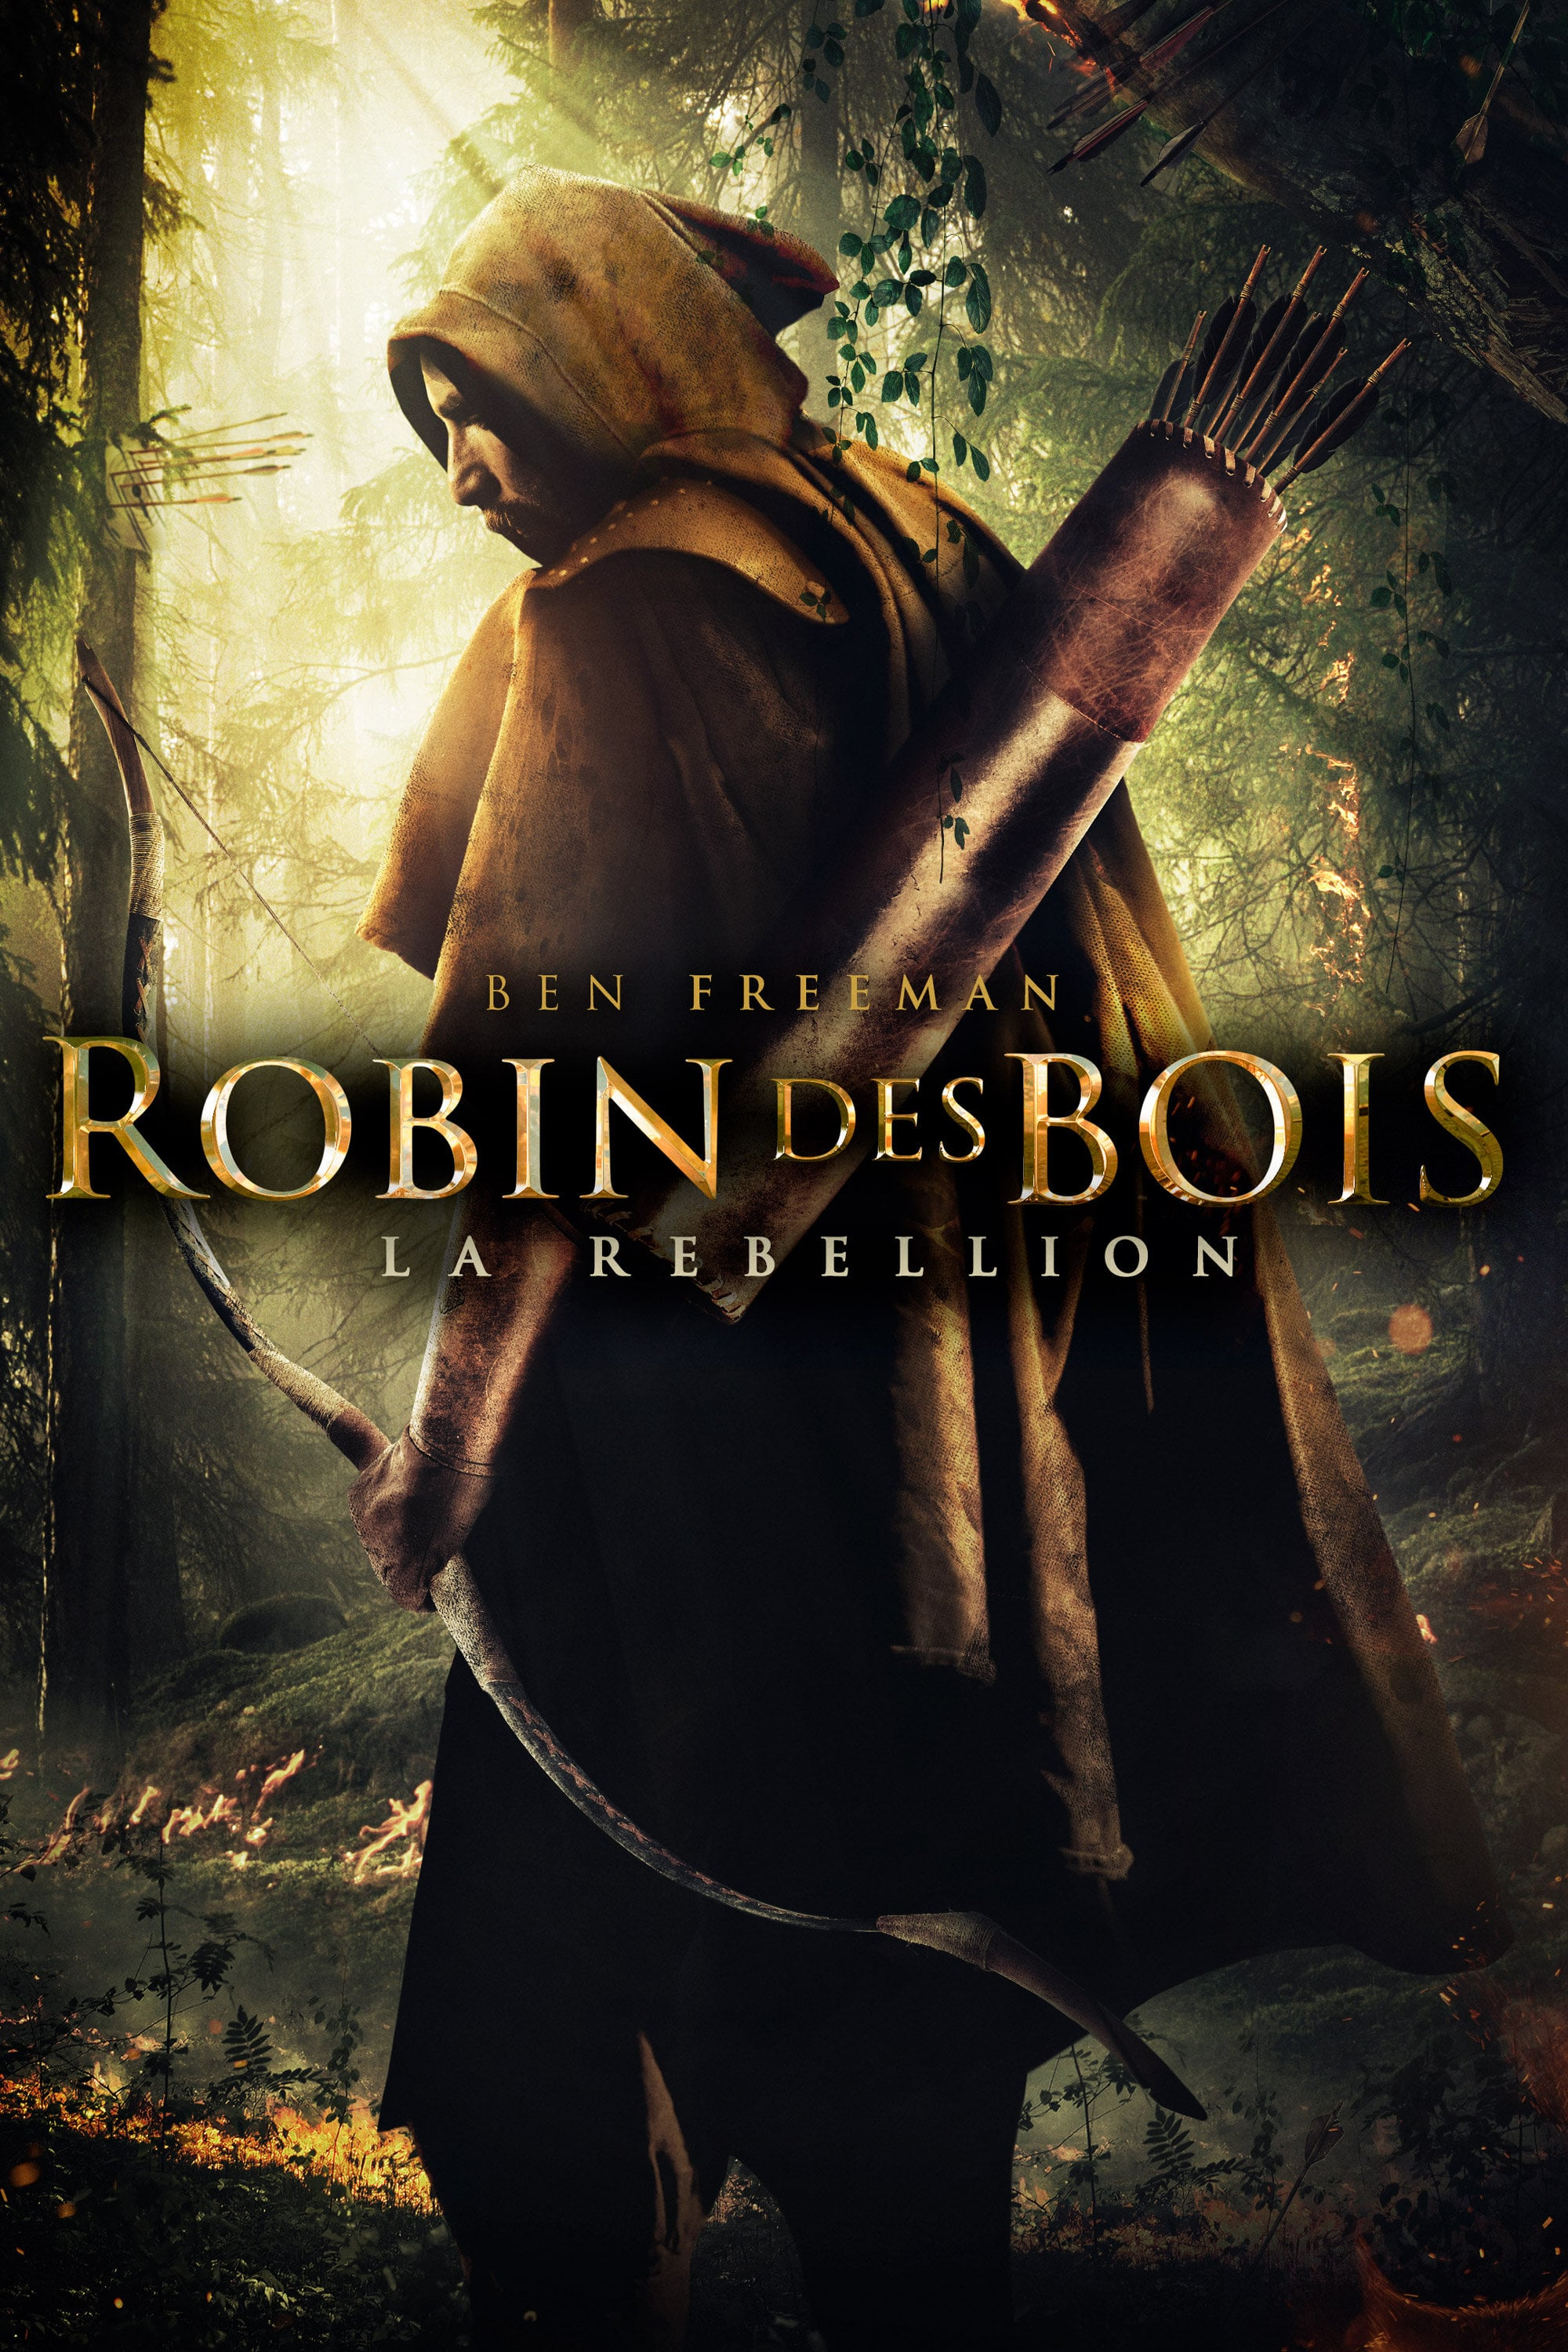 Robin des Bois: La Rebellion en streaming vf